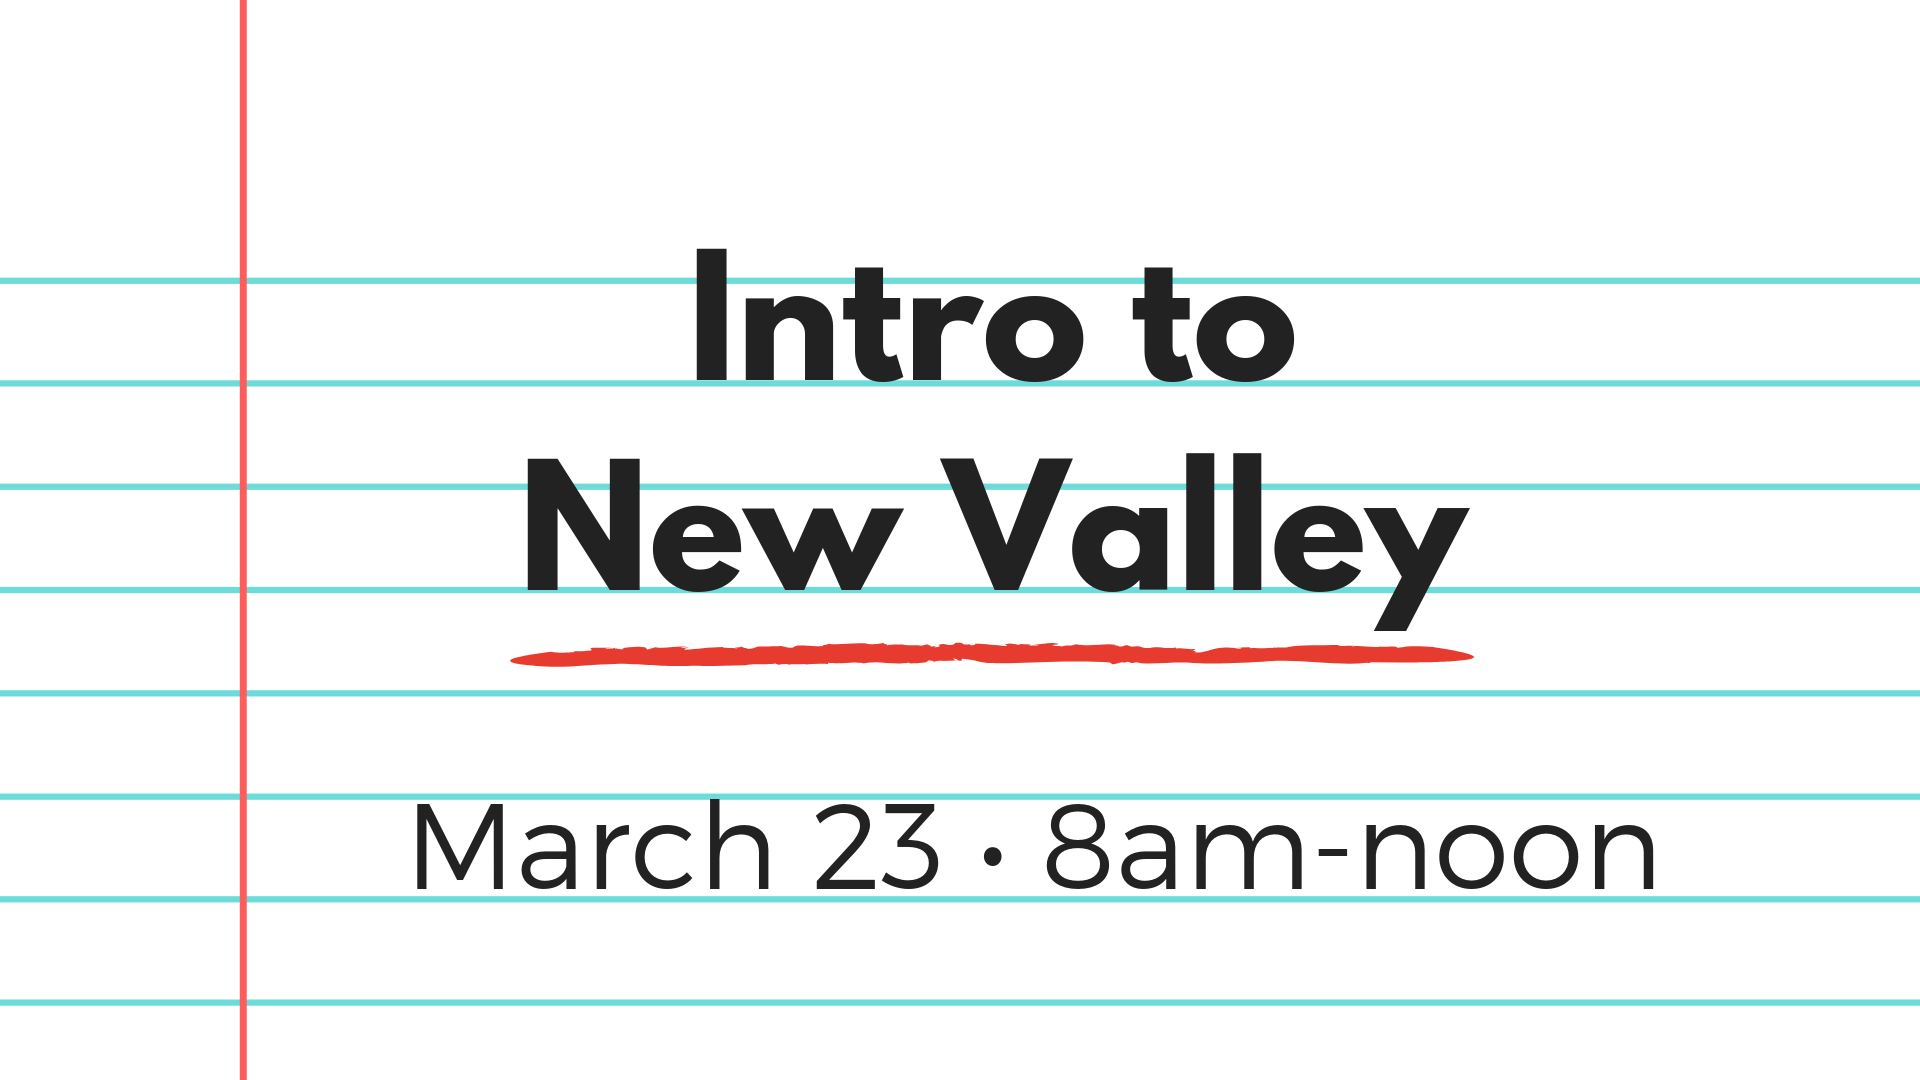 Intro to NV March 23 image